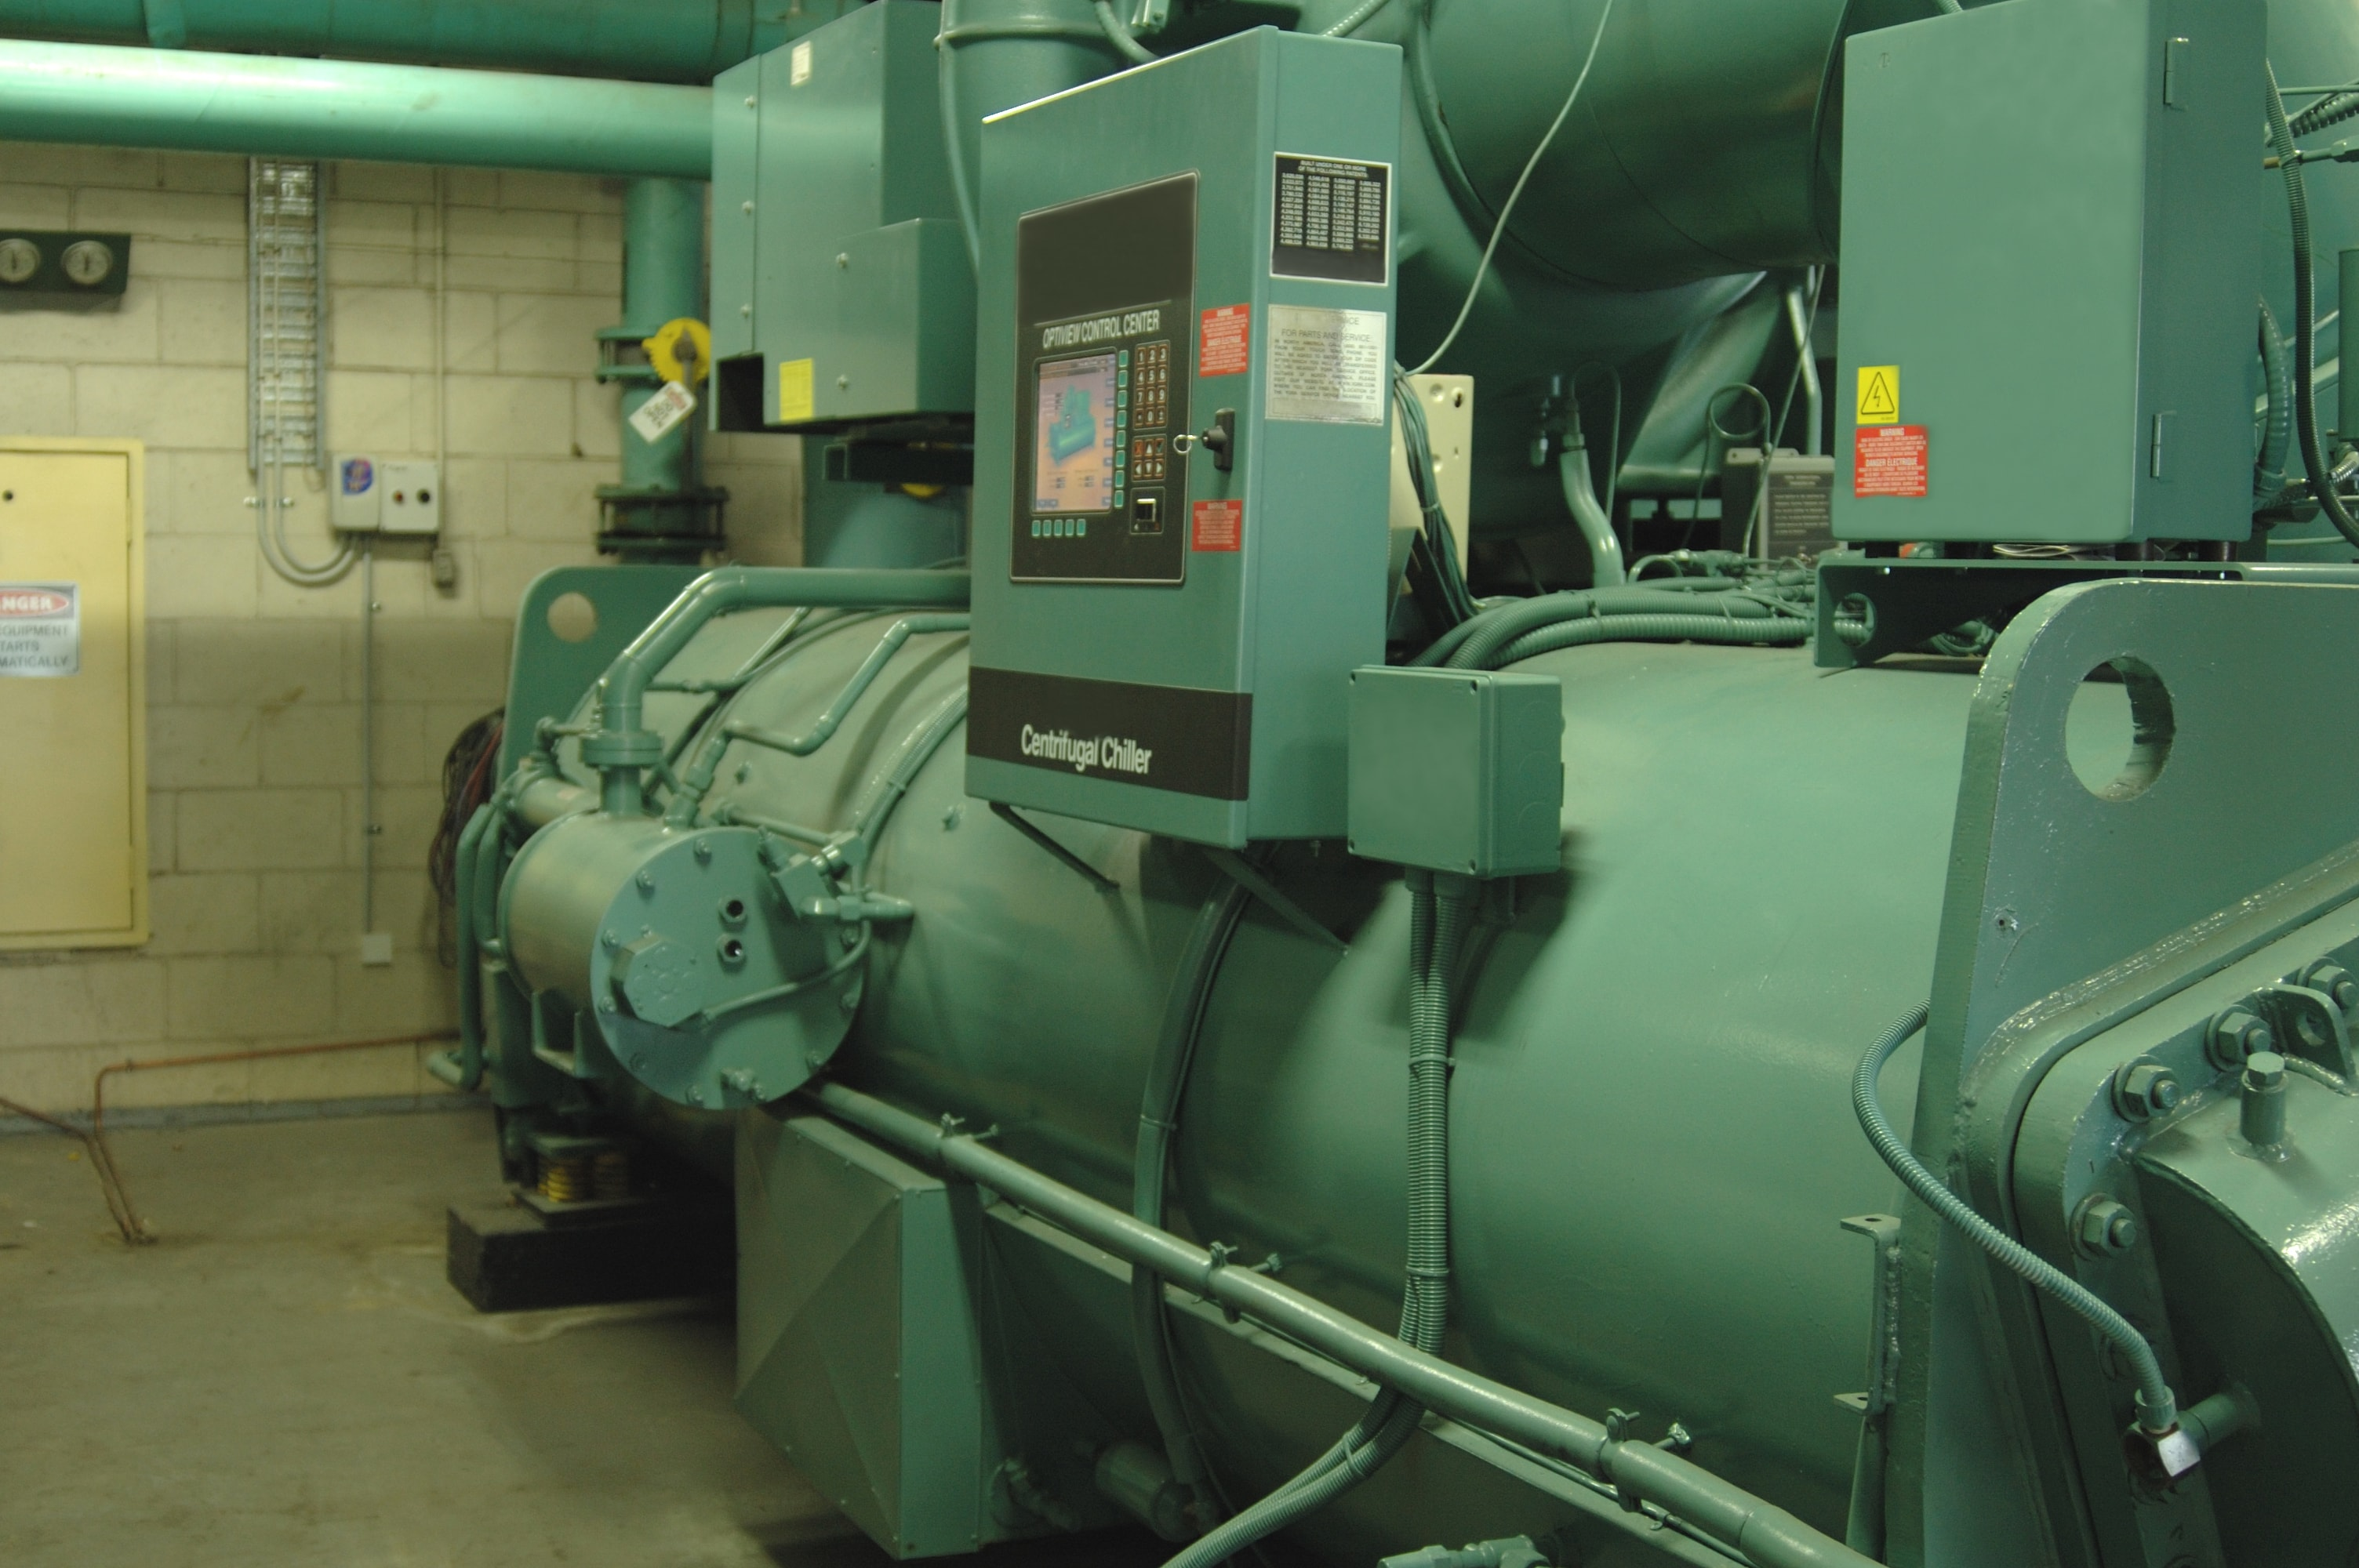 2.-Commercial-Water-Chiller-min